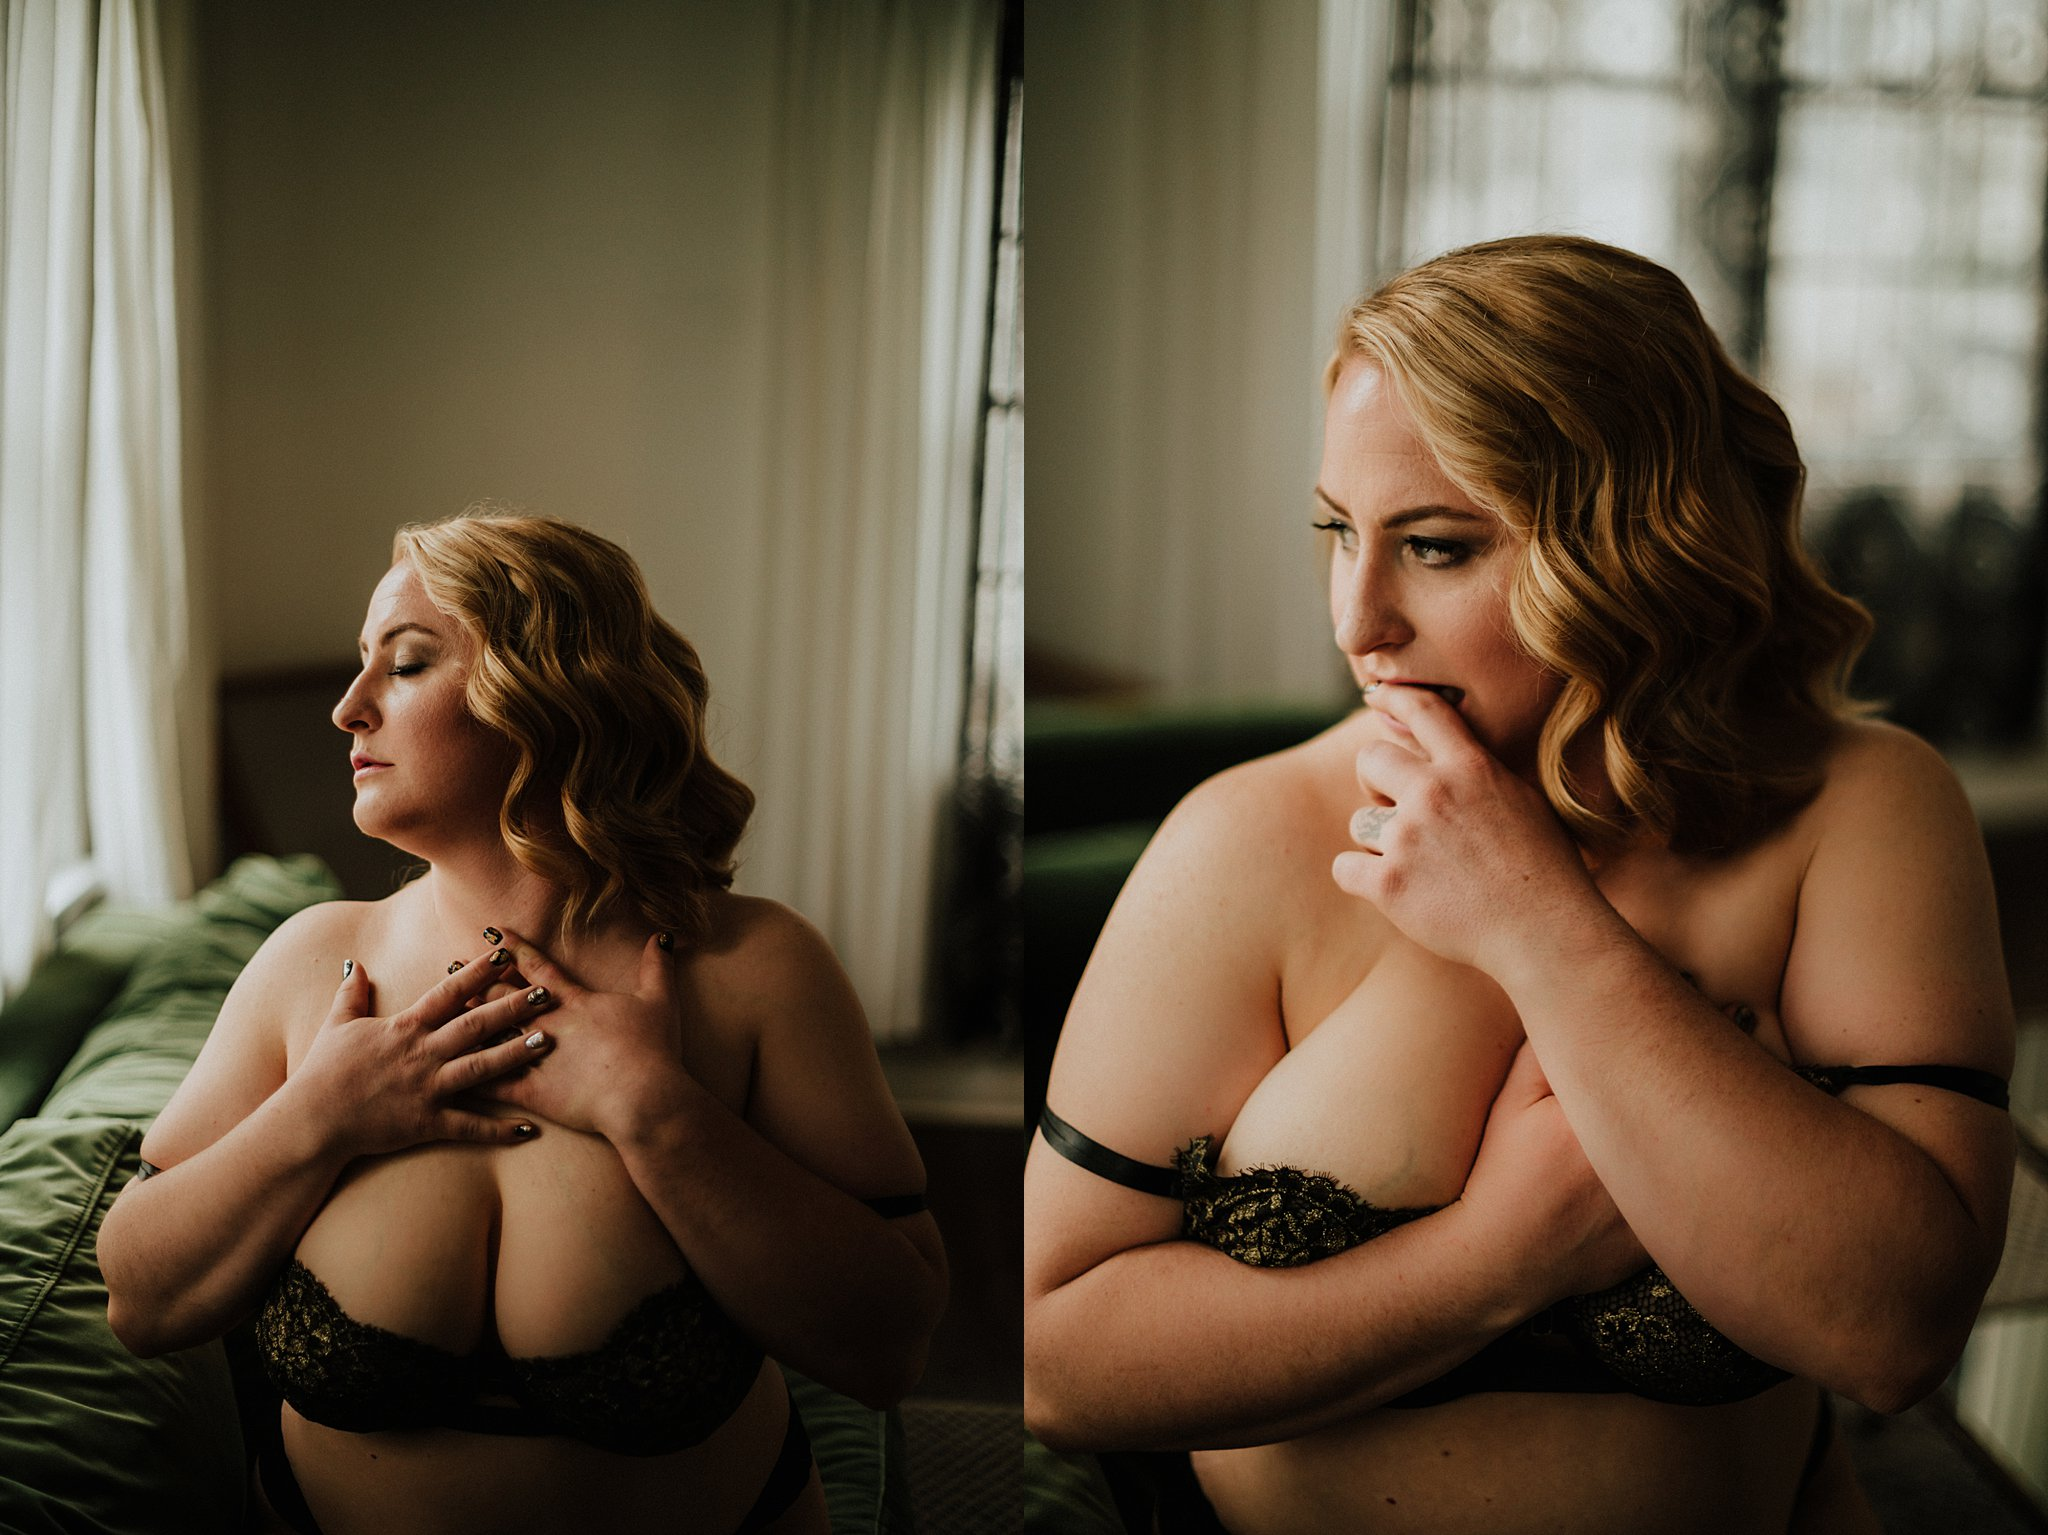 Massachusetts Boudoir Photographer | Western Mass Boudoir | New England Boudoir | Boston Boudoir | Mon Chari Boudoir